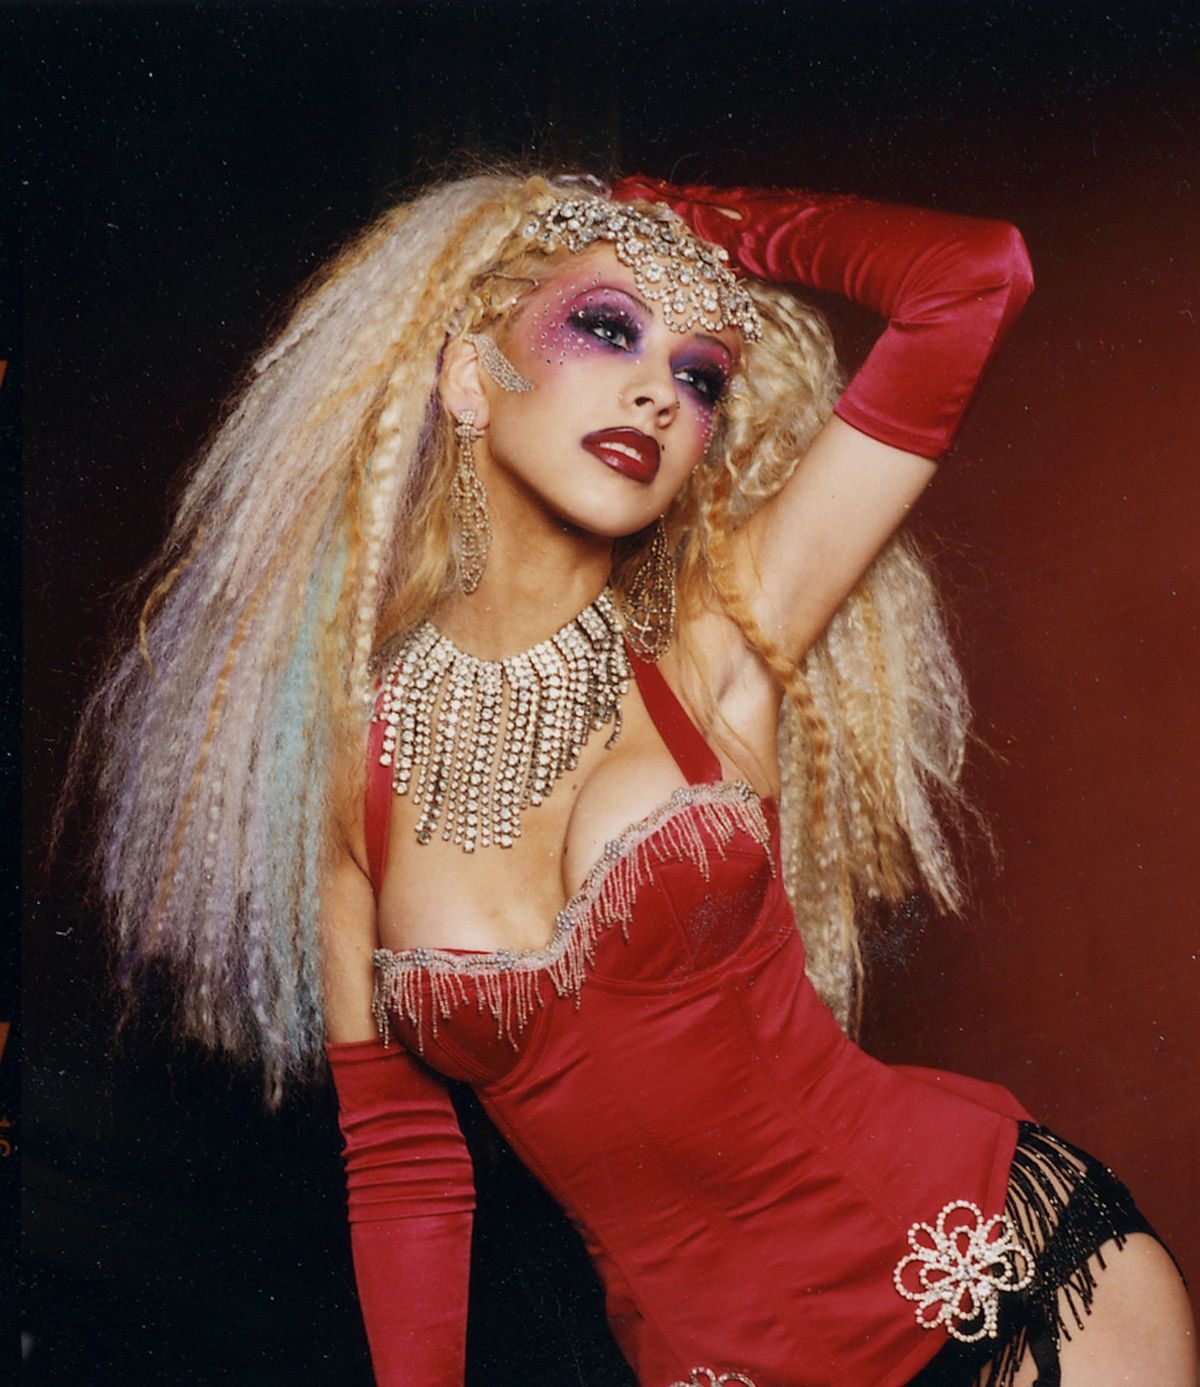 christina aguilera lady marmelad скачать: